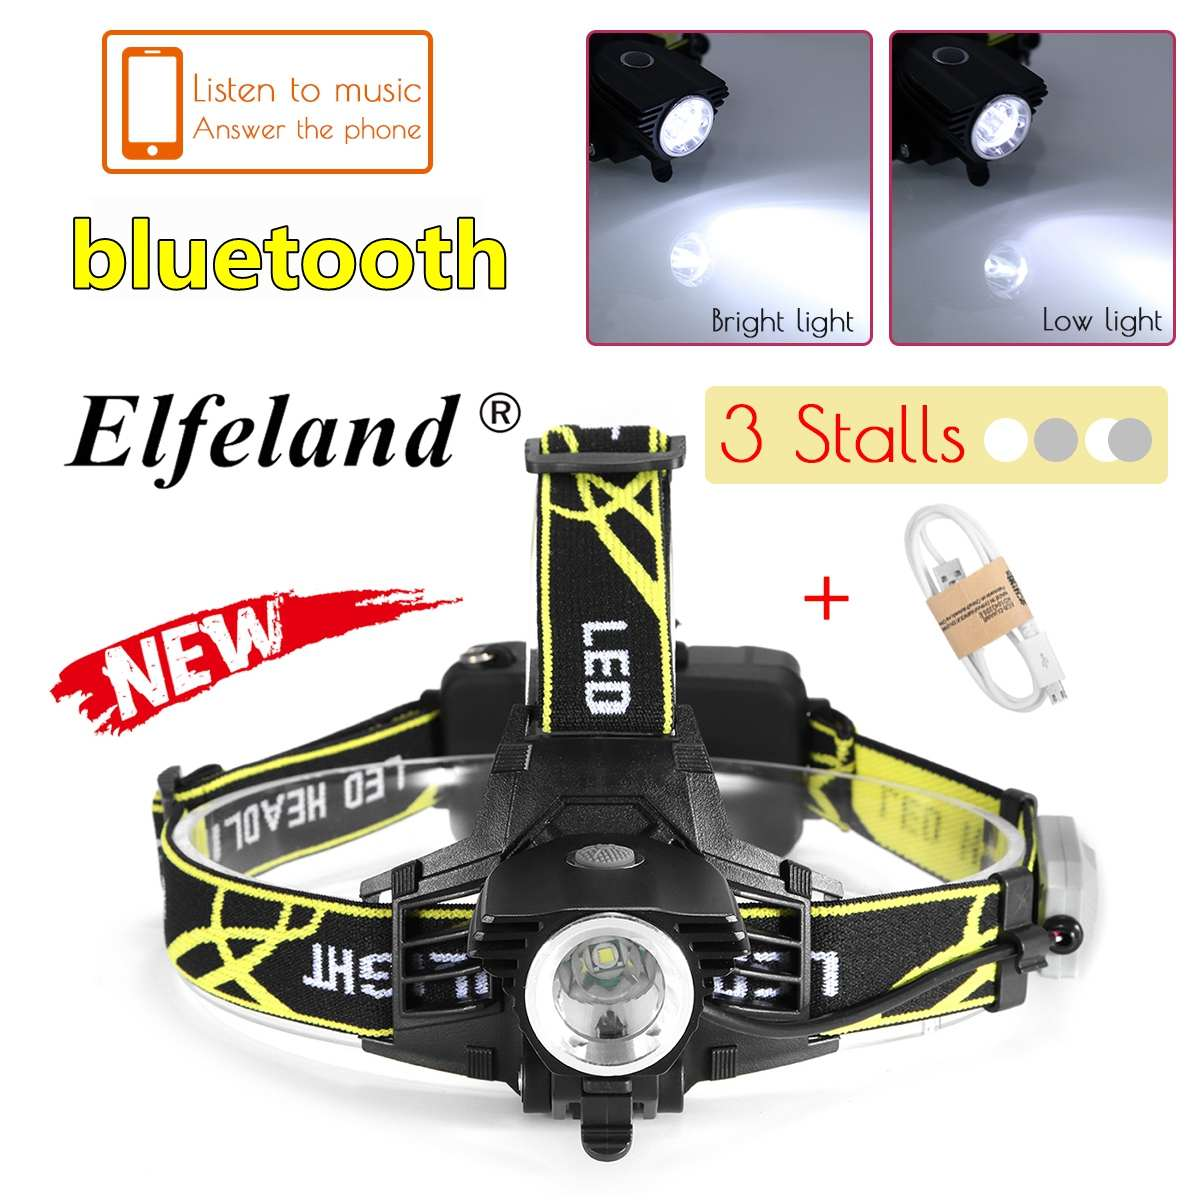 Aluminum alloy LED headlight with bluetooth and headphone jack Multi-function head-mounted waterproof outdoor lighting